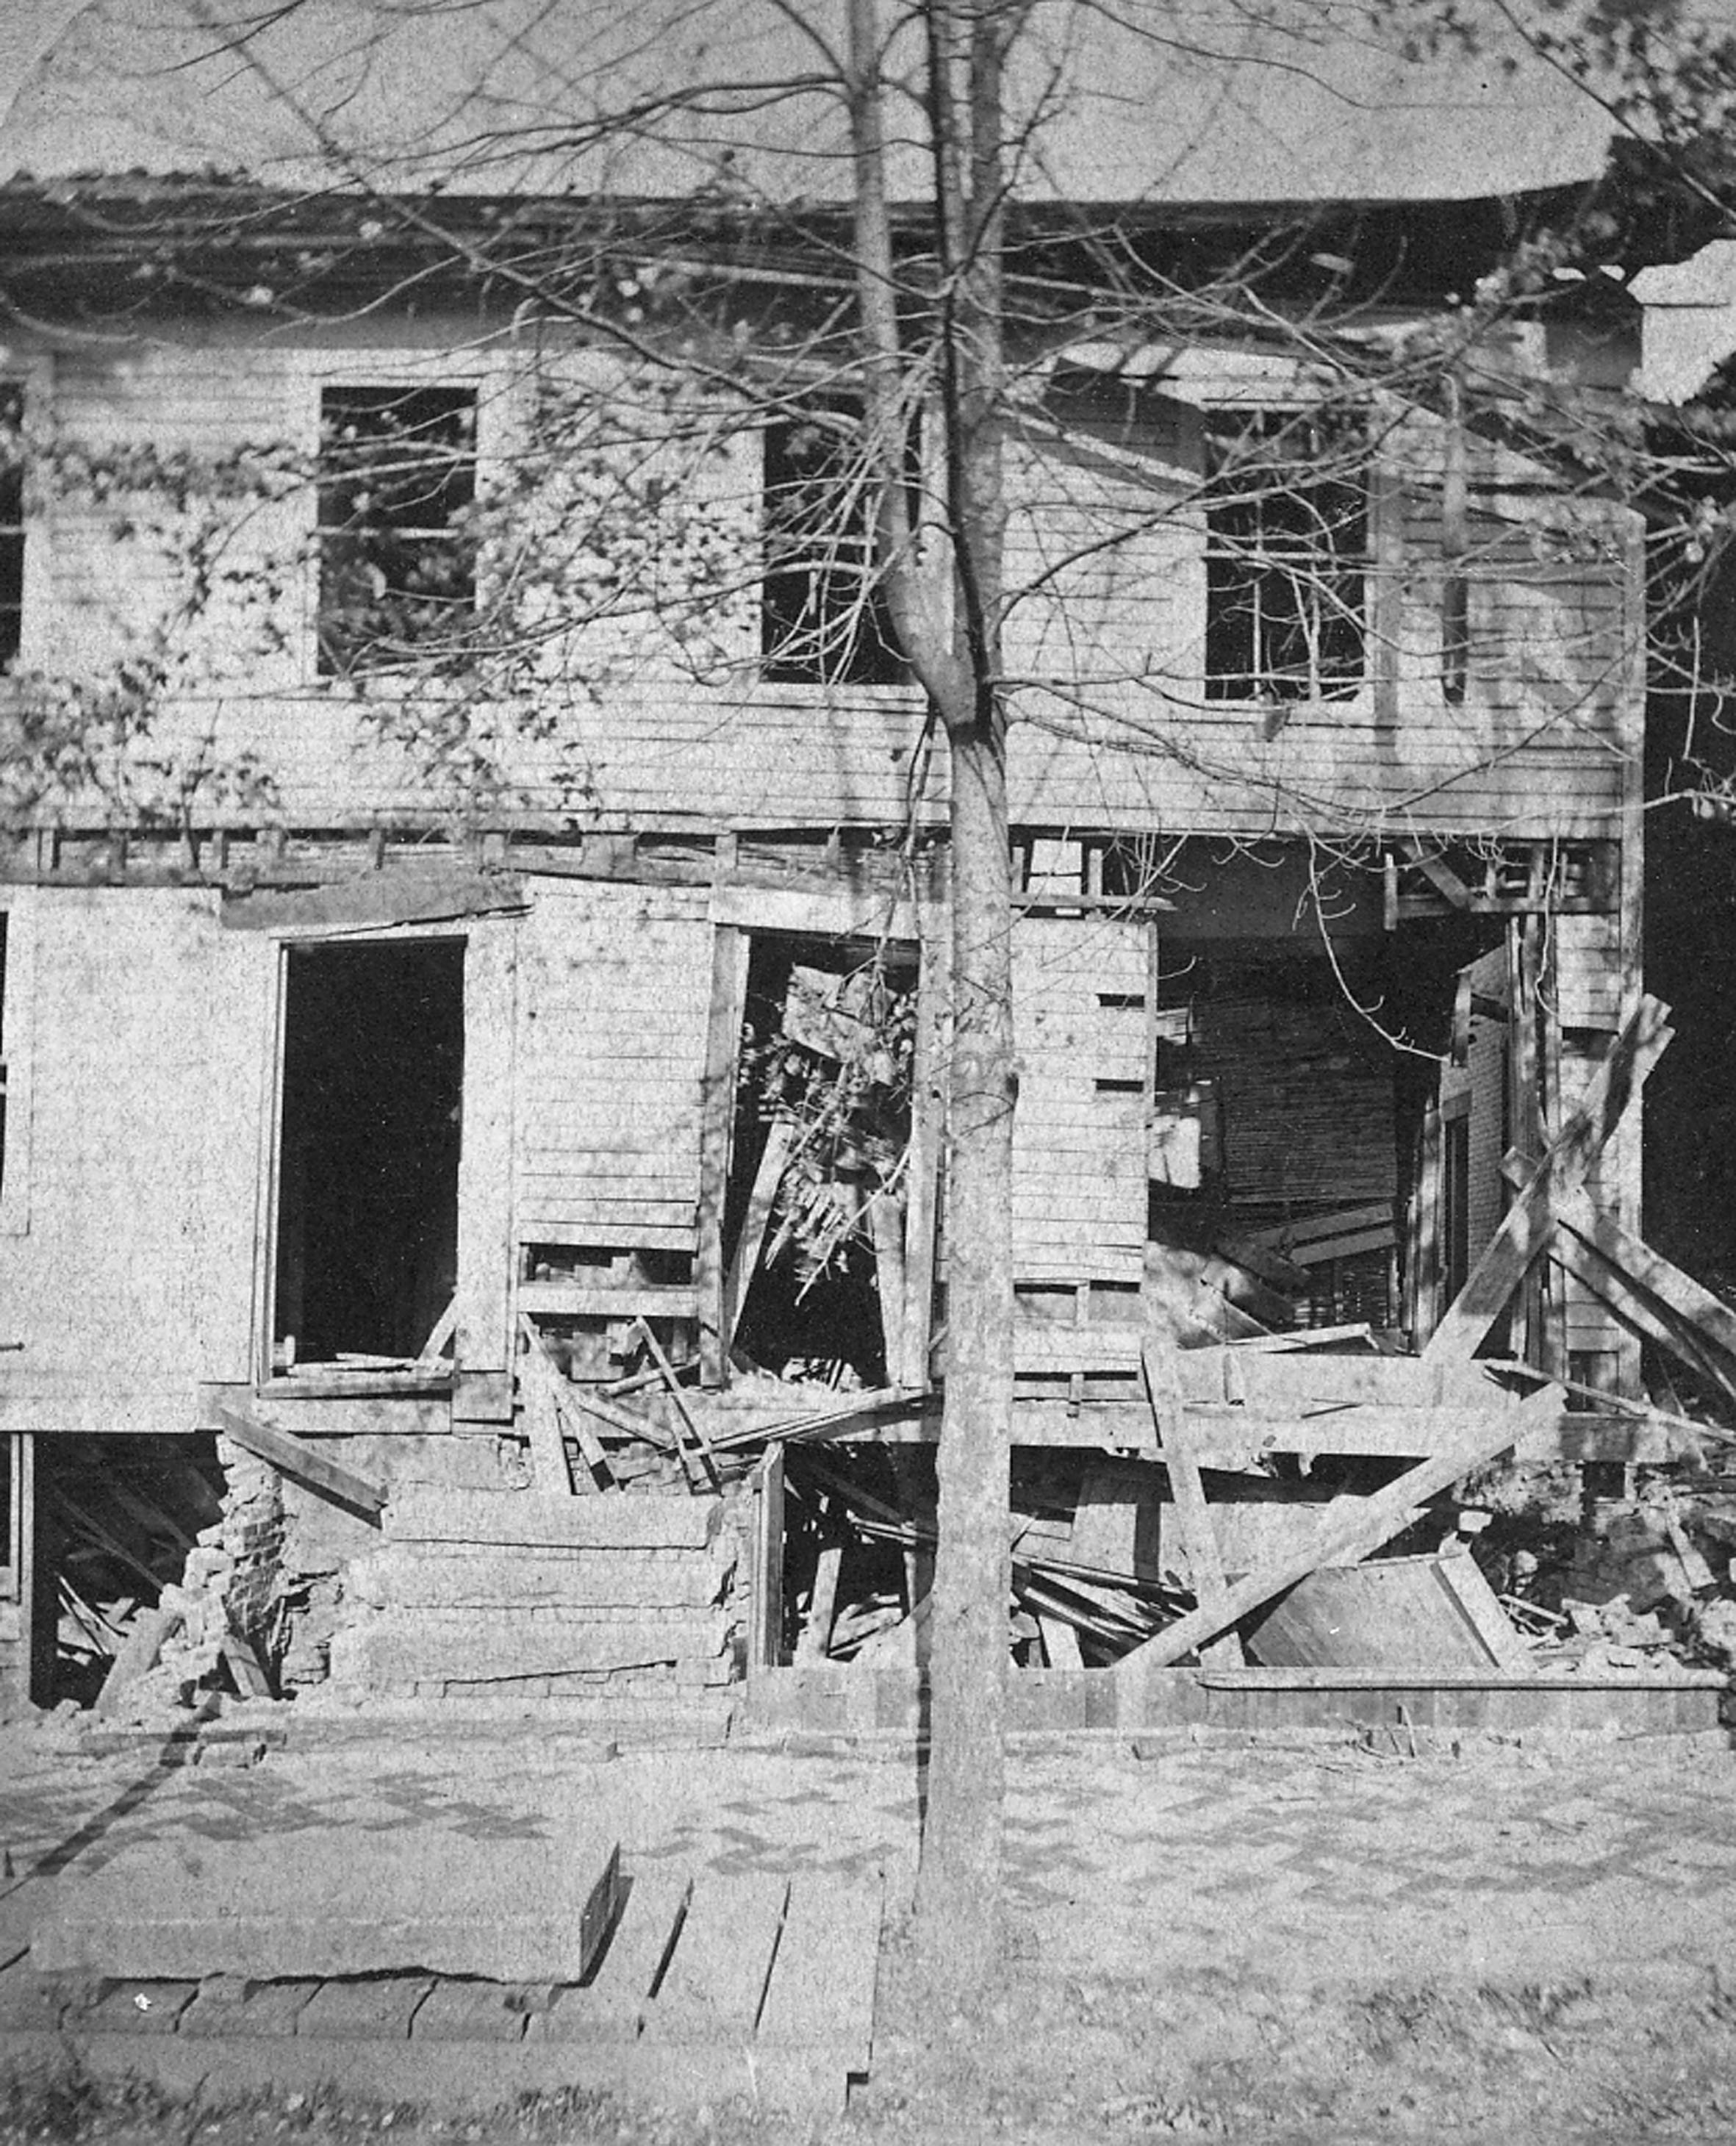 Corbin's Tavern, upon being bombed by Temperance supporters.